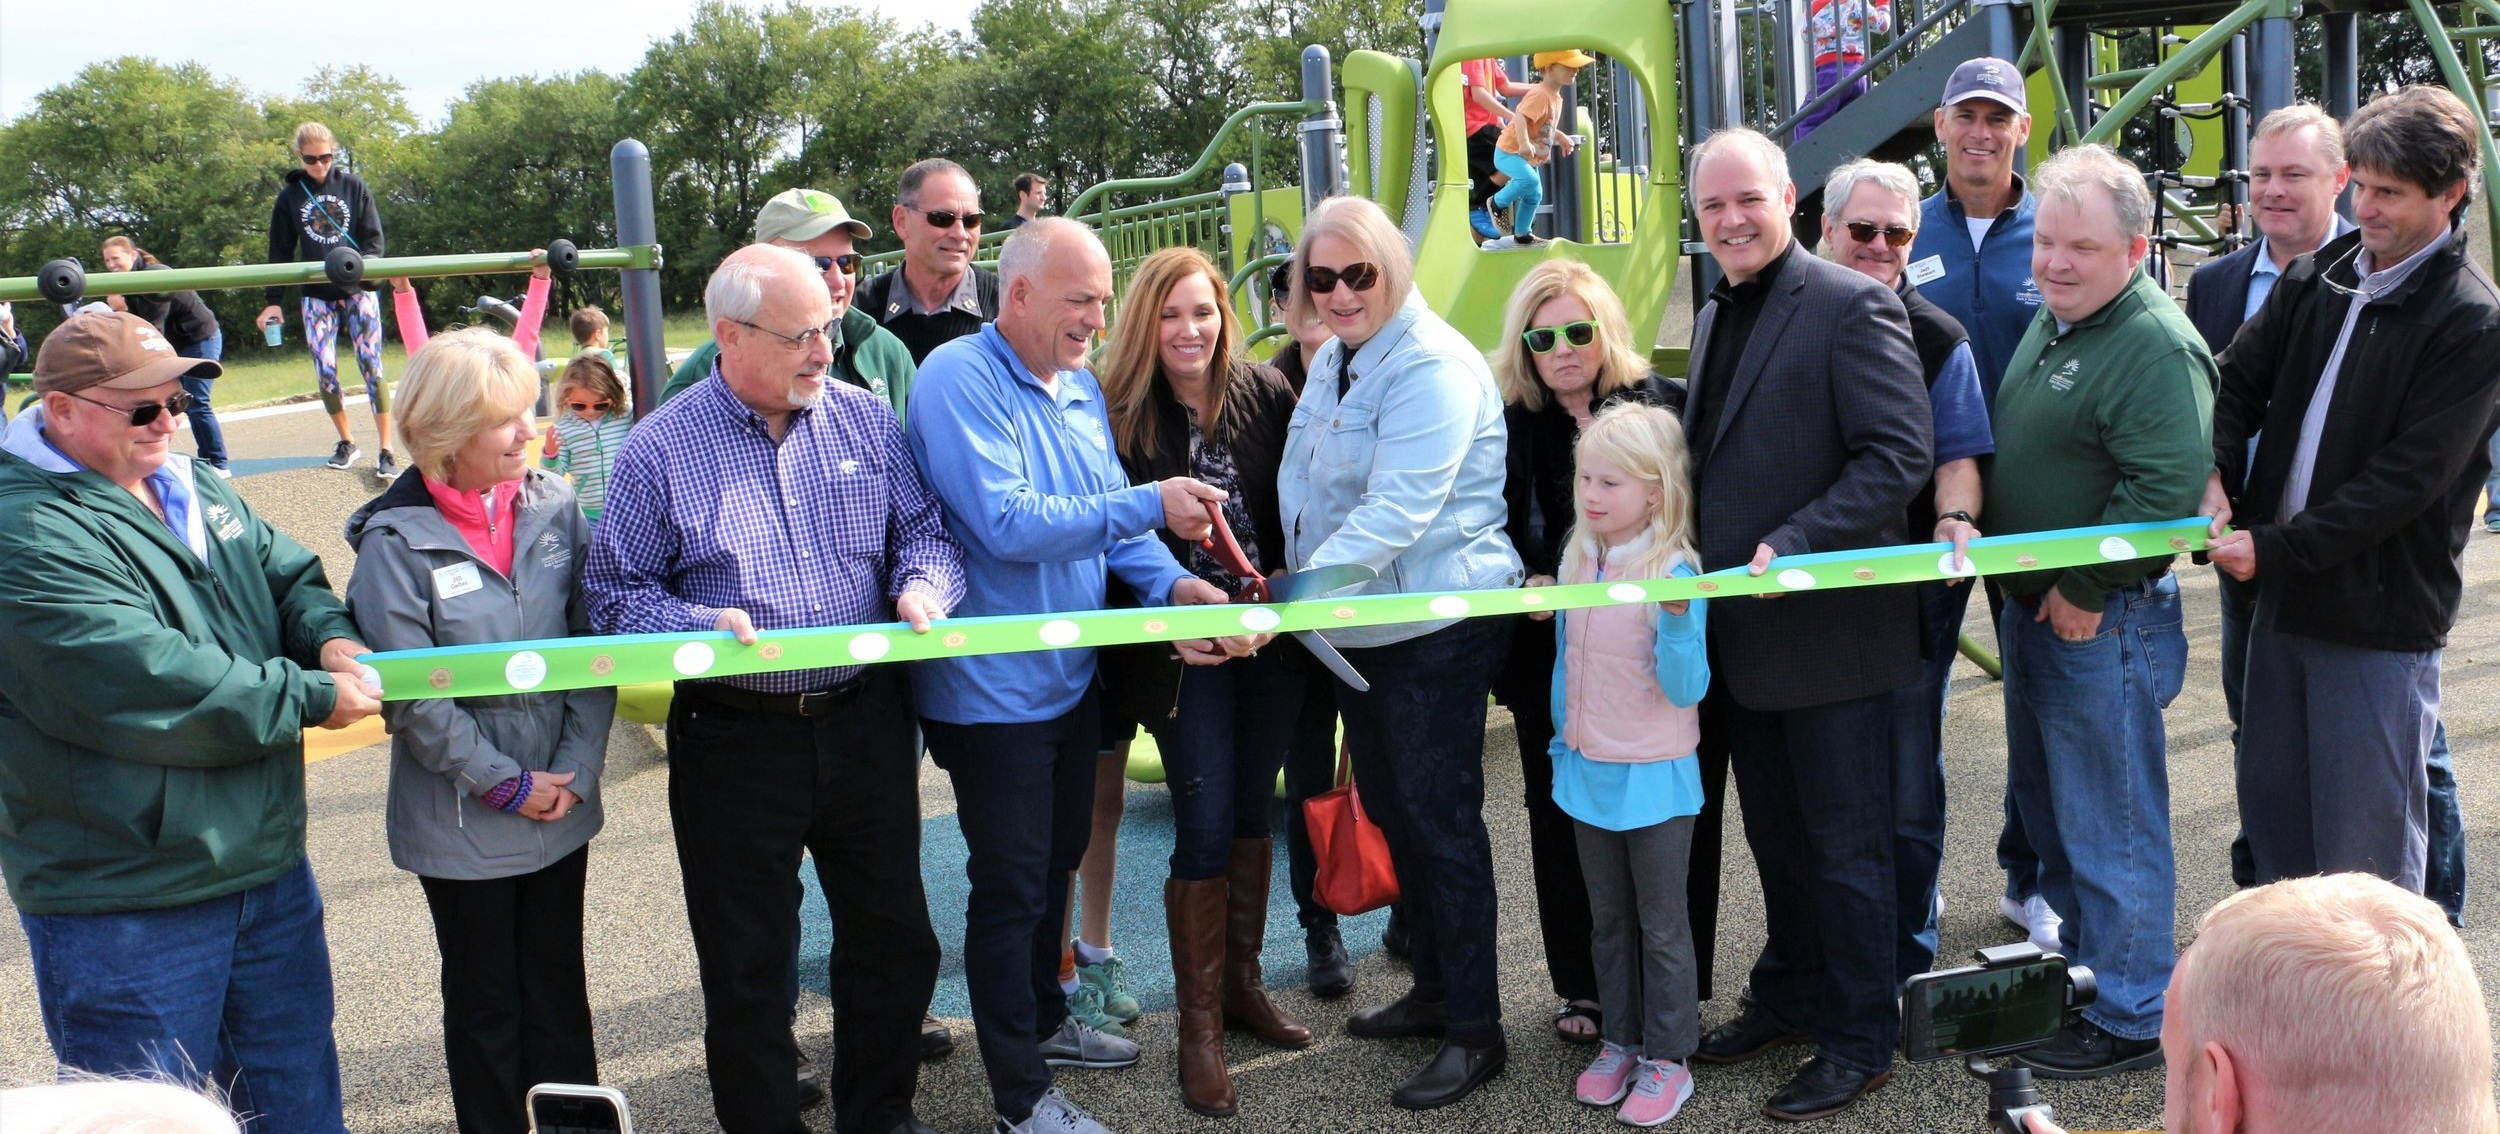 Ribbon+Cutting+at+a+Park+Opening